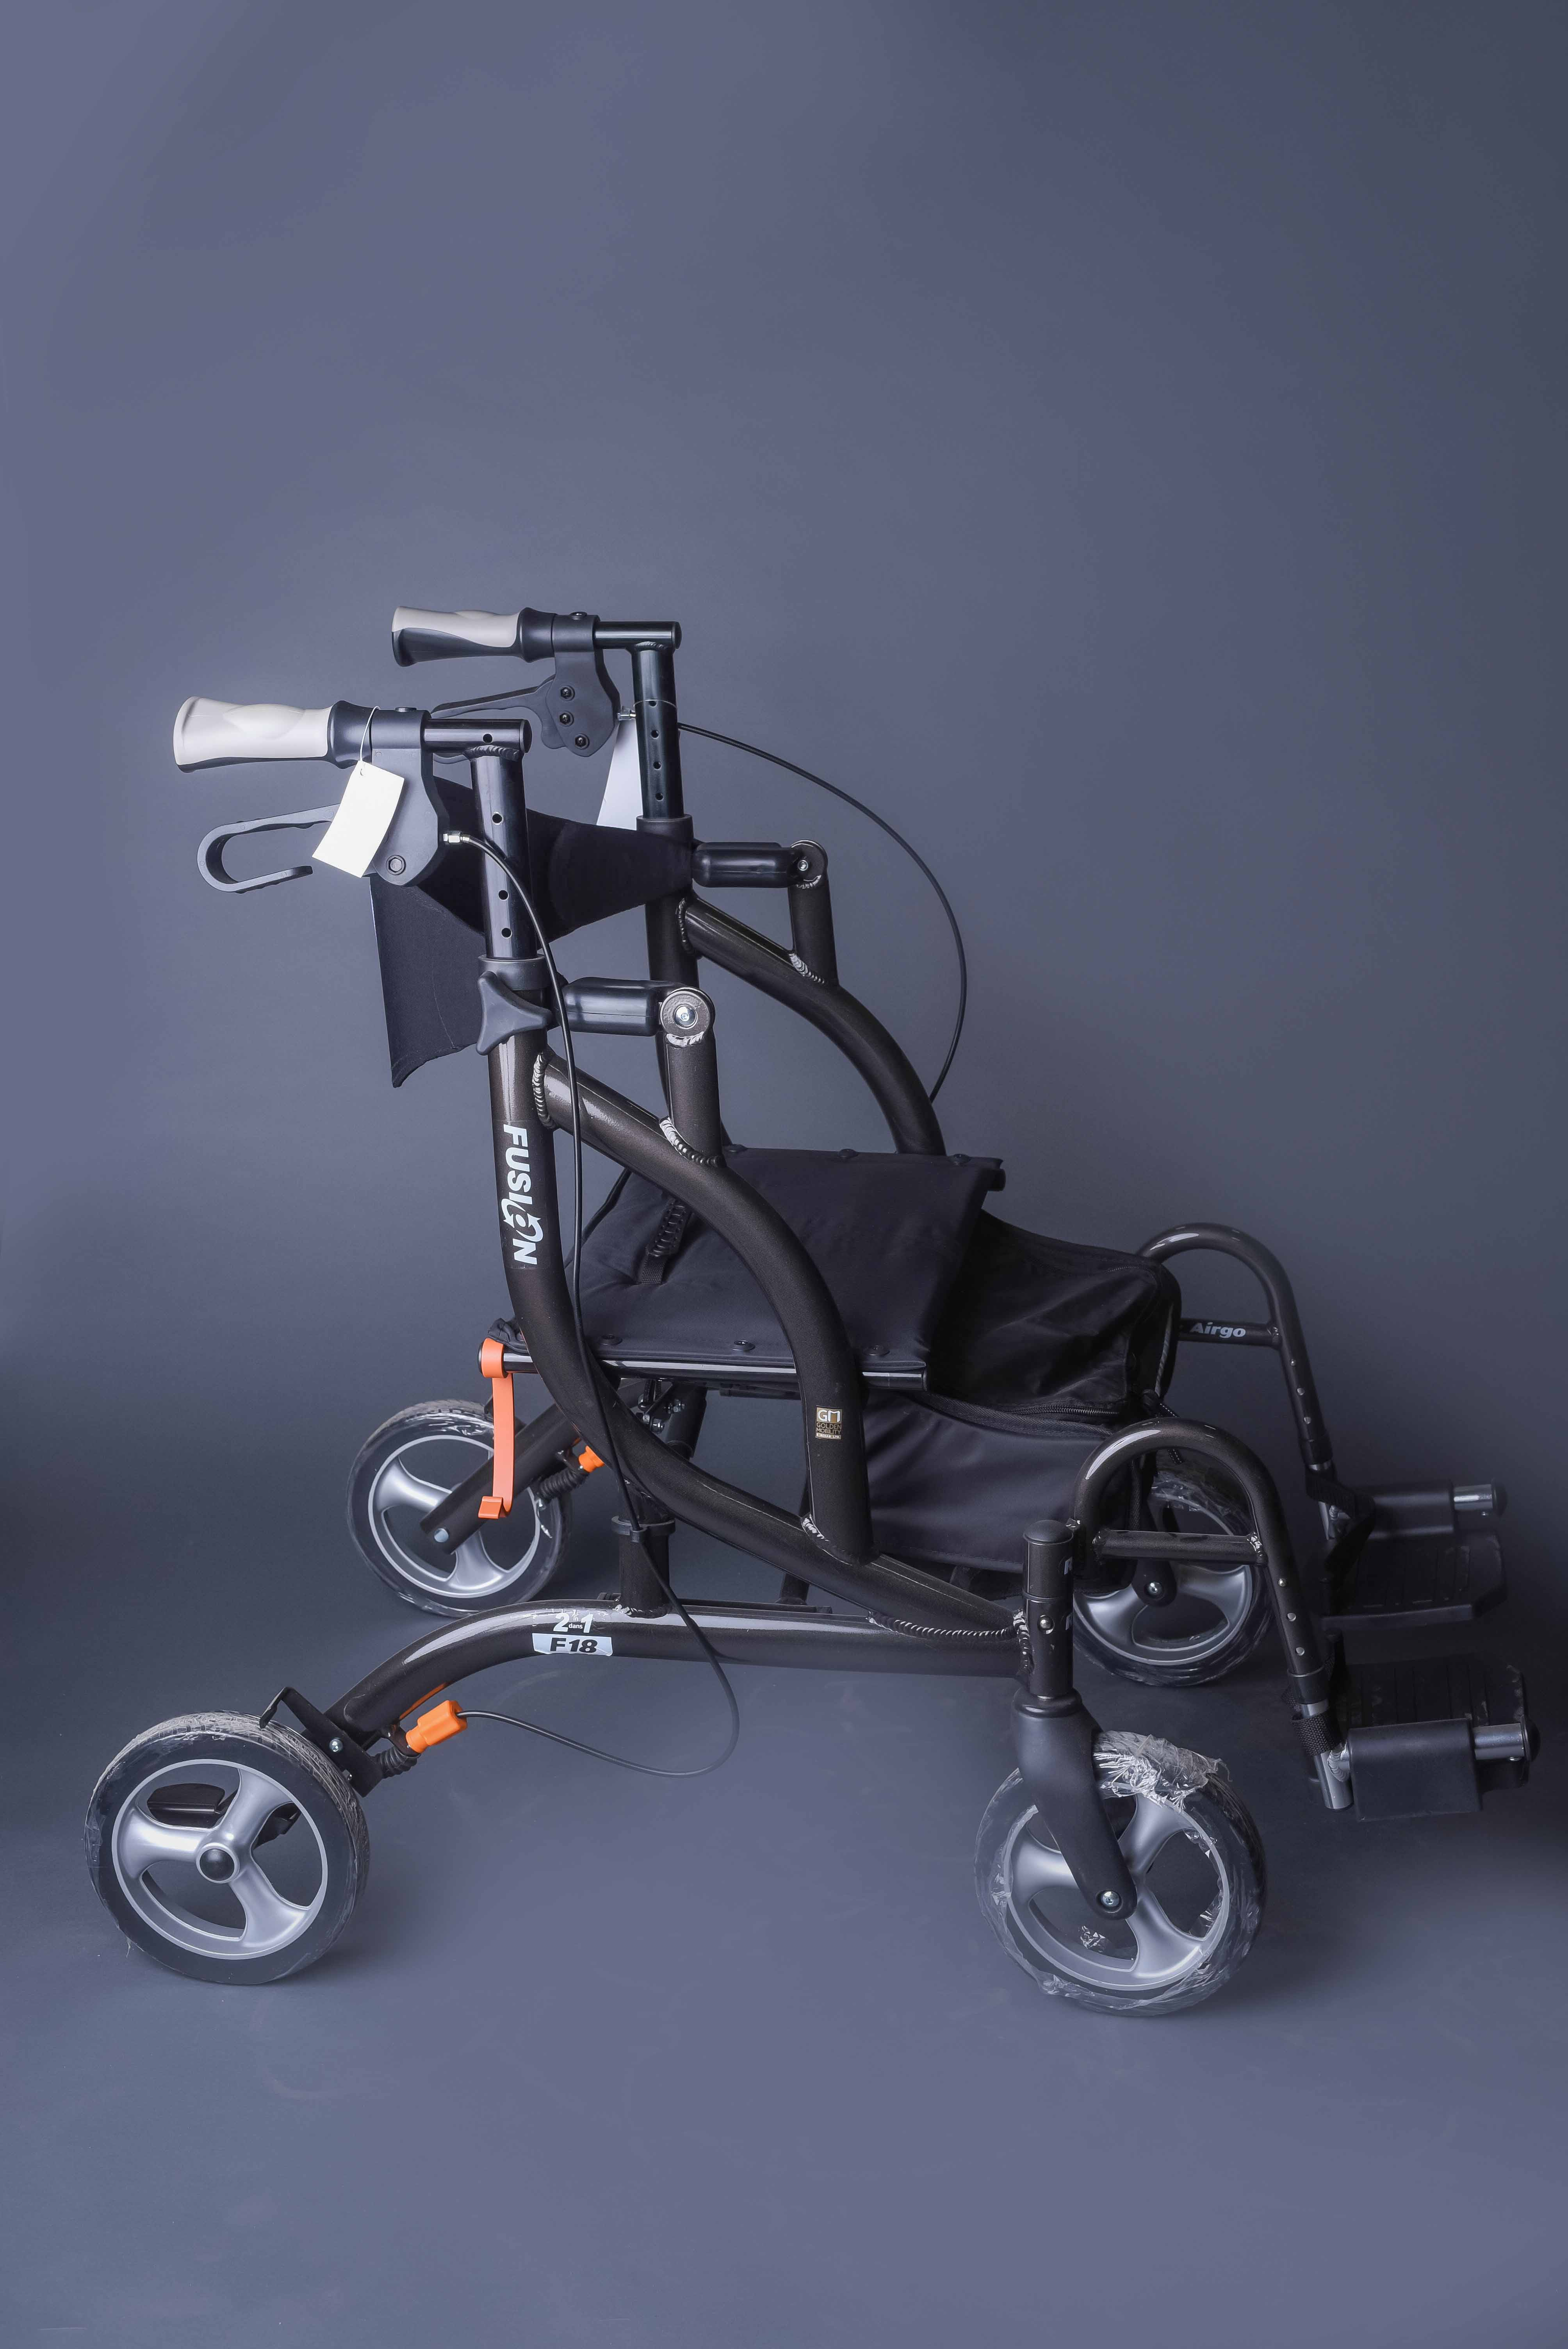 Airgo Fusion WalkerTransport Chair by Drive Medical